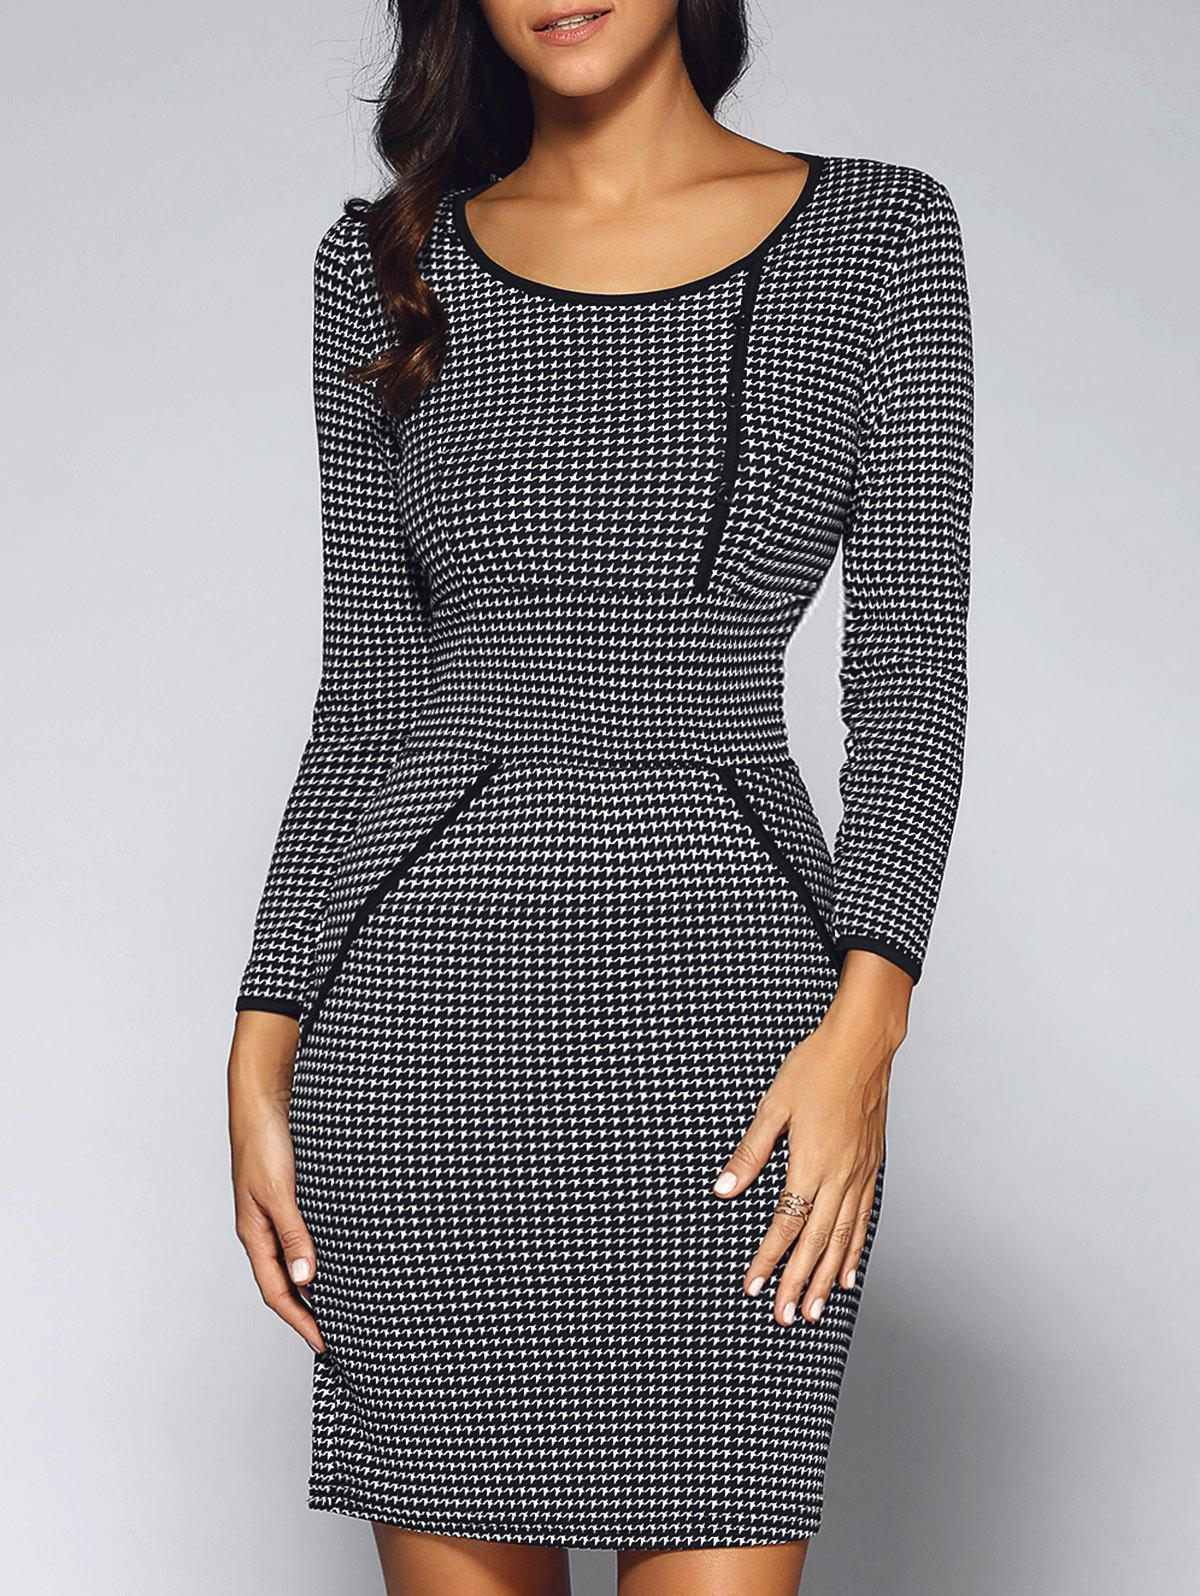 Houndstooth Long Sleeve Sheath Work Business DressWOMEN<br><br>Size: S; Color: BLACK; Style: Work; Material: Polyester; Silhouette: Sheath; Dresses Length: Mini; Neckline: Scoop Neck; Sleeve Length: Long Sleeves; Embellishment: Button; Pattern Type: Others; With Belt: No; Season: Fall,Spring; Weight: 0.257kg; Package Contents: 1 x Dress;